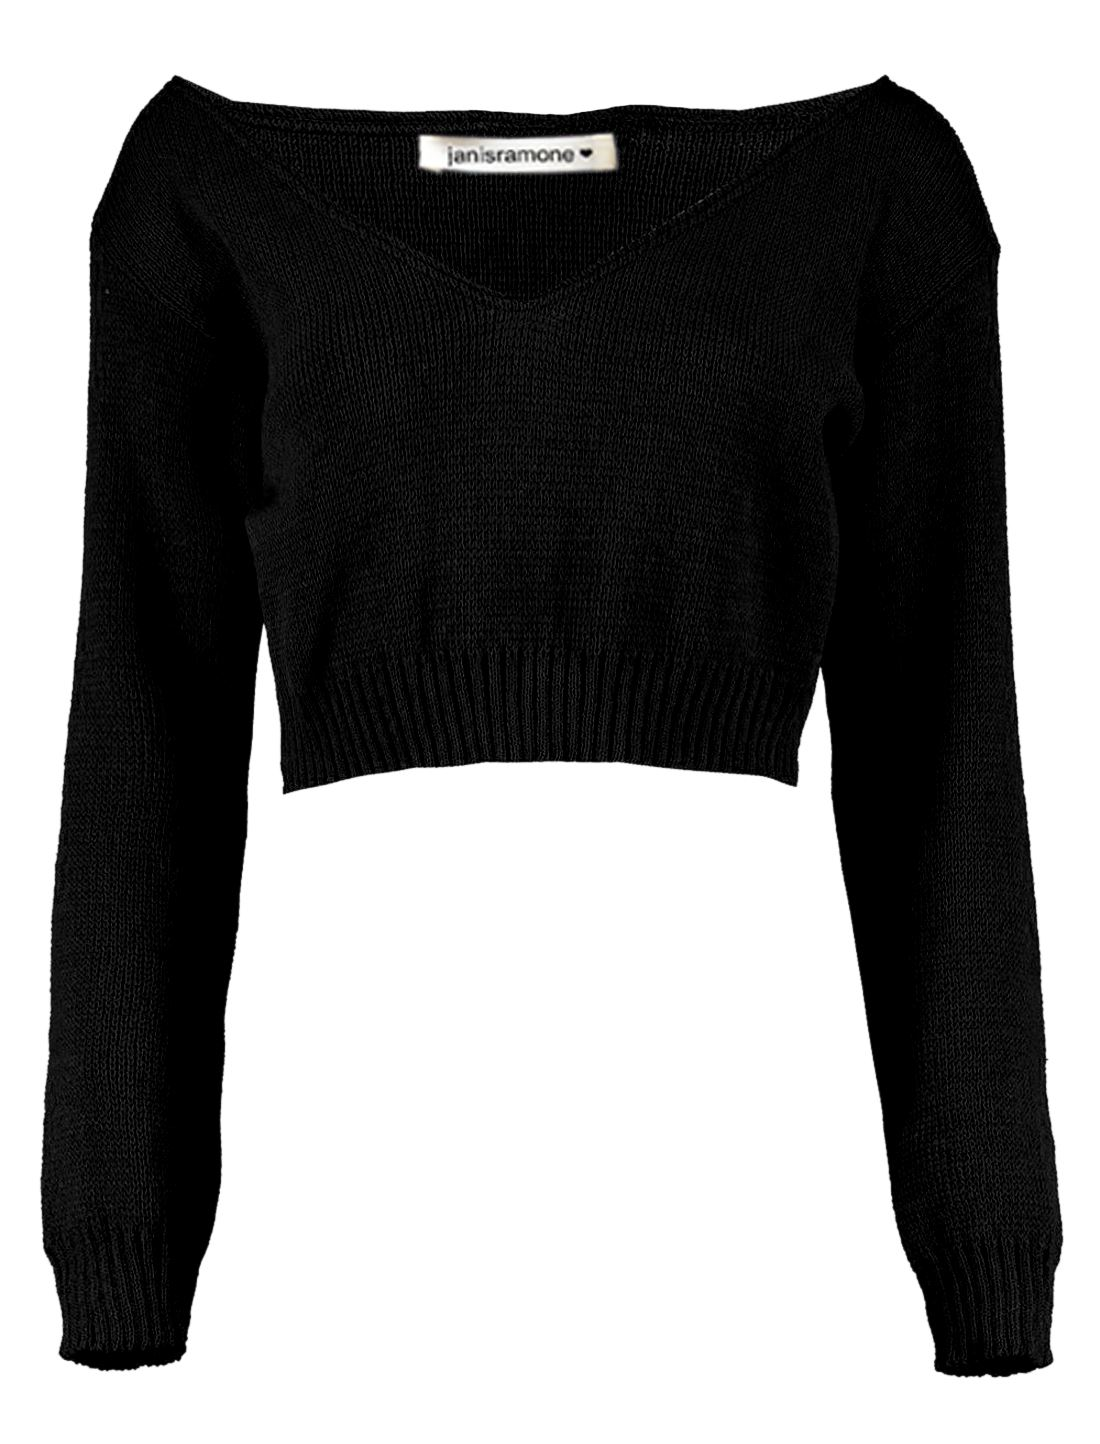 New-Womens-Off-Shoulder-V-Neck-Knitted-Cropped-Long-Sleeve-Jumper-Warm-Sweater miniatura 5